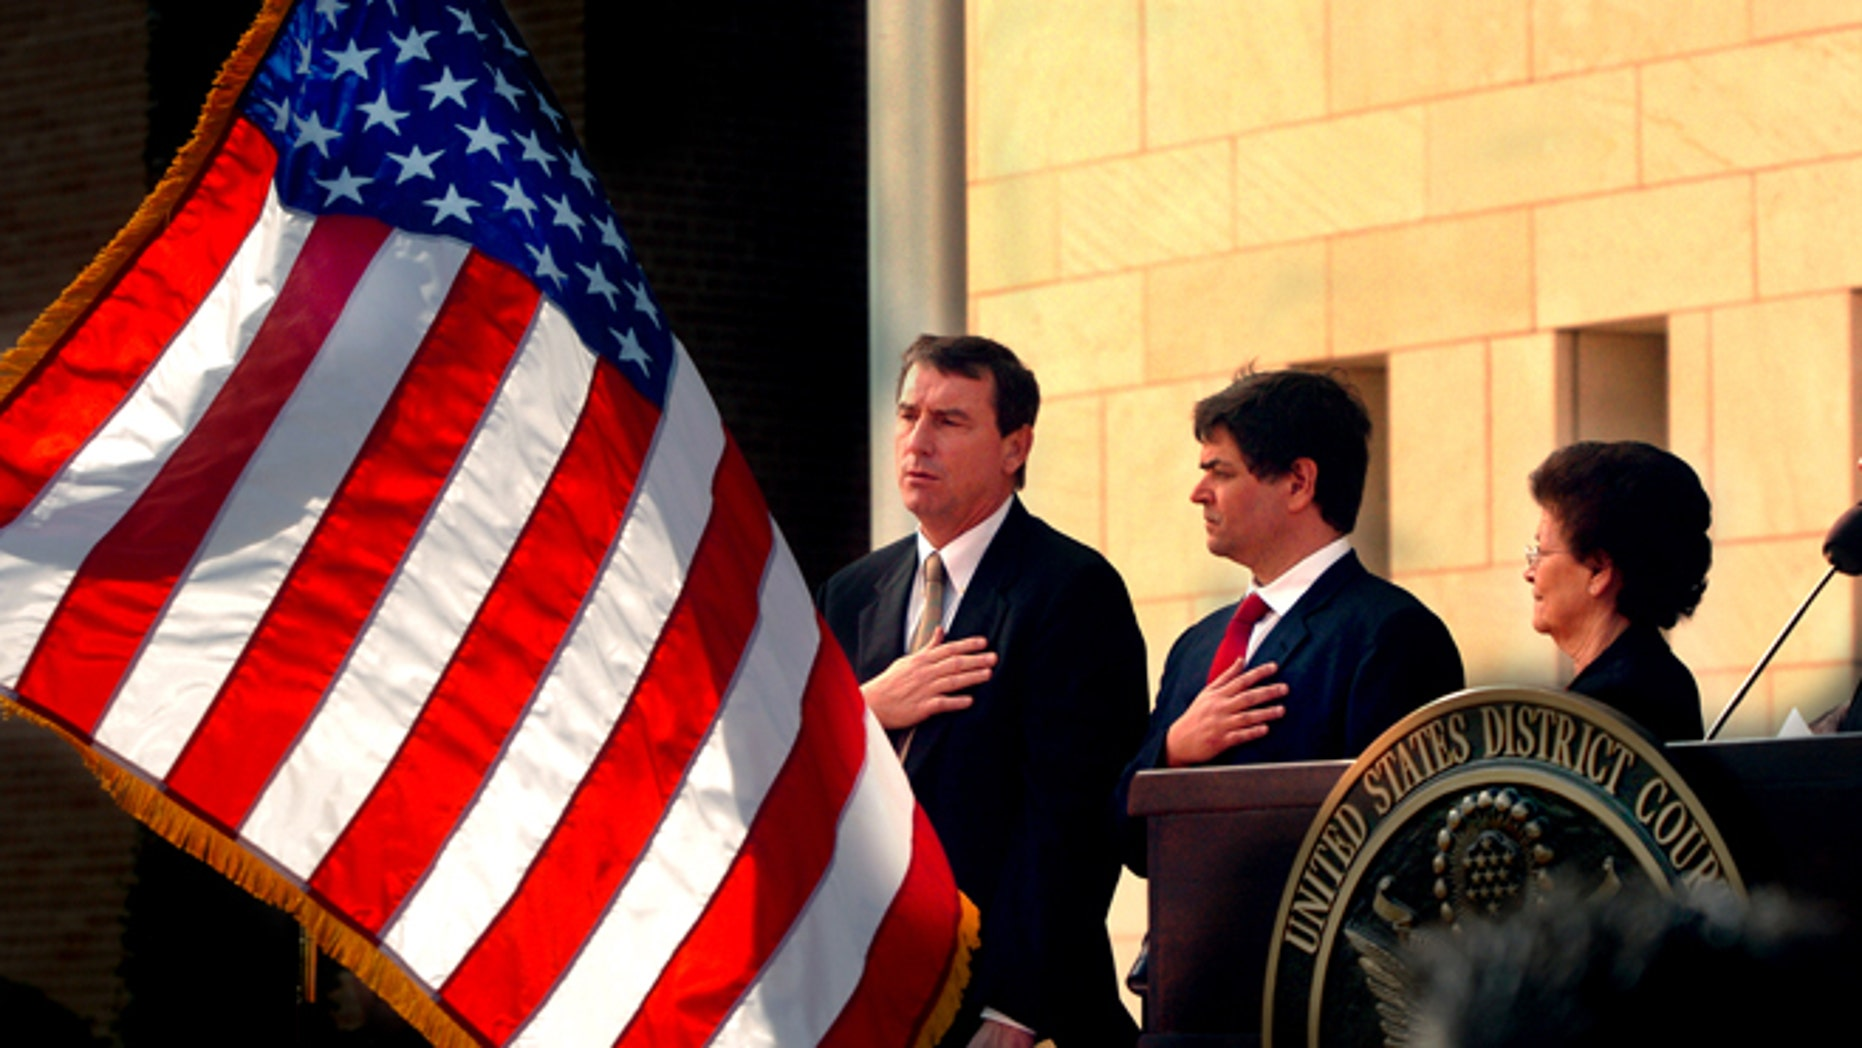 FILE- In this Nov. 14, 2005, file photo, U.S. Southern District Judge Andrew S. Hanen, left, joins with Filemon B. Vela, Jr. and Blanca Vela for the Pledge of Allegiance during the United States Courthouse naming ceremony in Brownsville, Texas. Hanen temporarily blocked President Barack Obama's executive action on immigration Monday, Feb. 16, 2015, giving a coalition of 26 states time to pursue a lawsuit that aims to permanently stop the orders. (AP Photo/The Brownsville Herald, Brad Doherty, File)